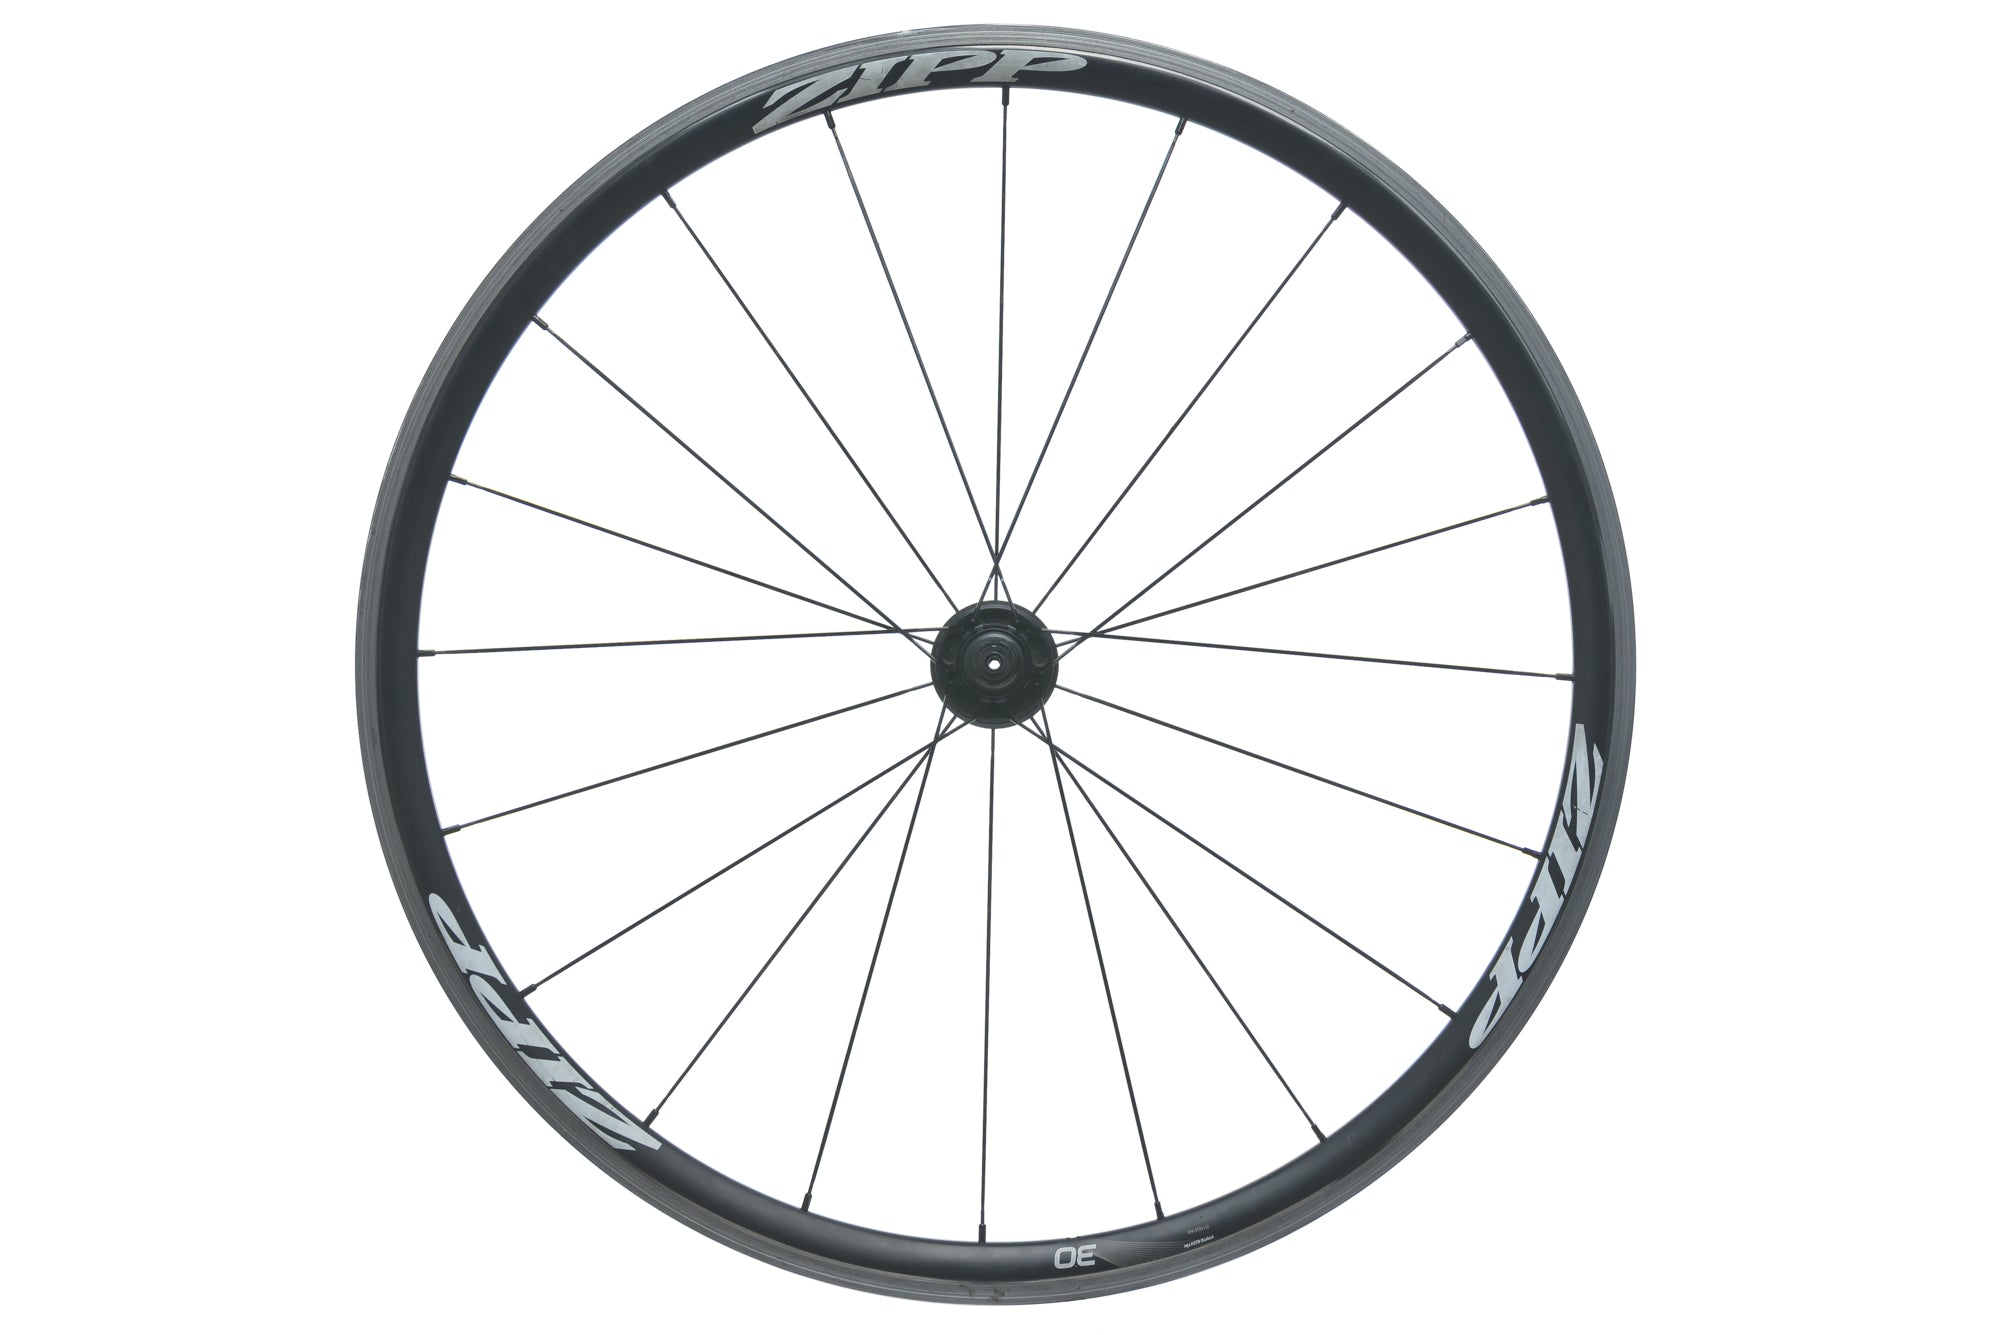 Zipp 30 Aluminum Clincher 700c Rear Wheel drive side